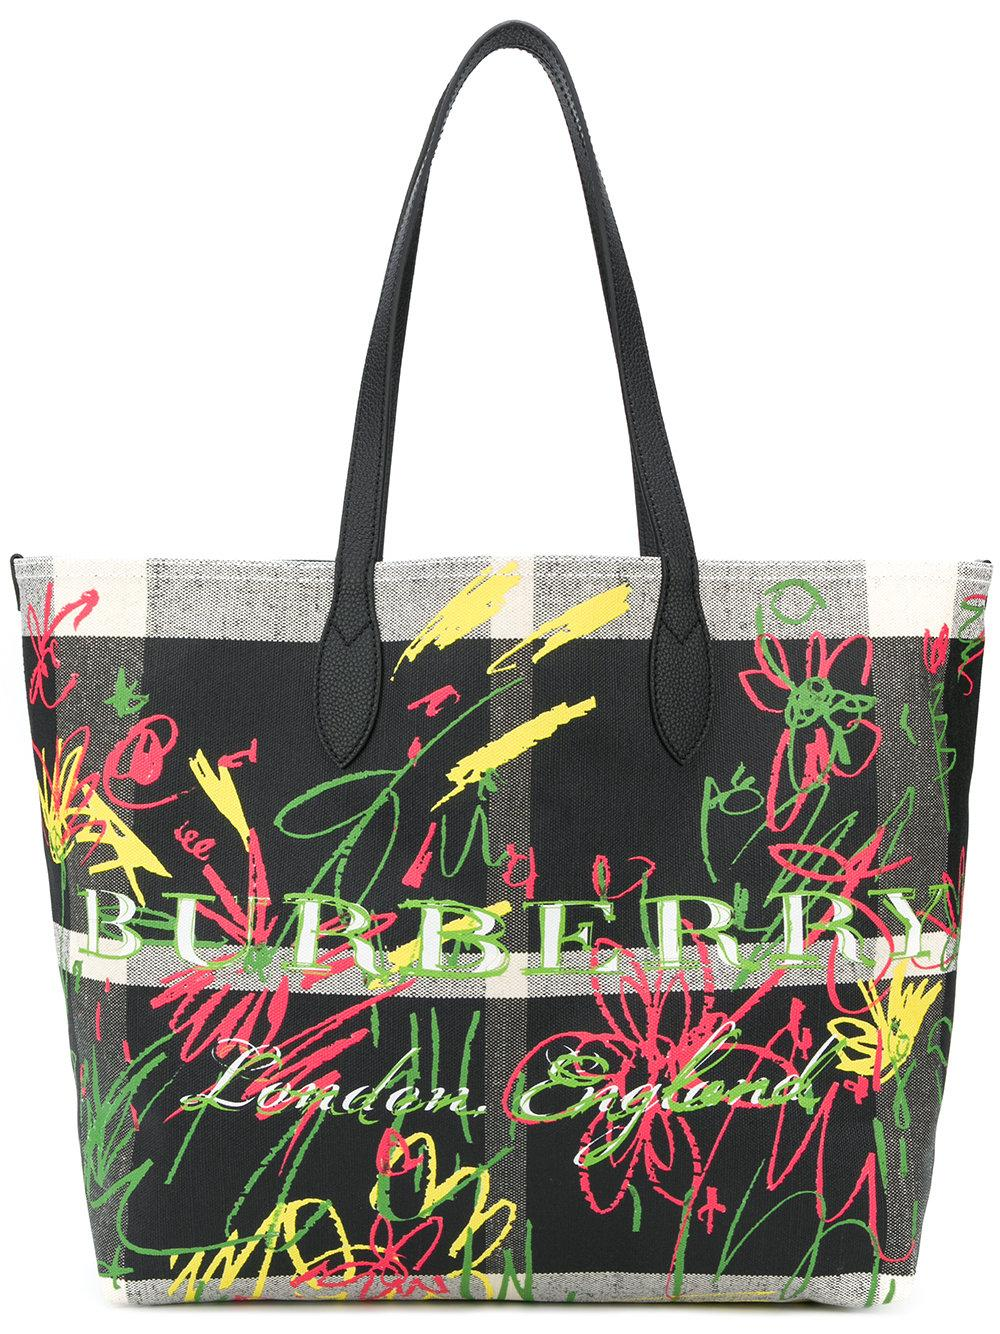 Burberry Large Reversible Doodle Tote Bag - Black